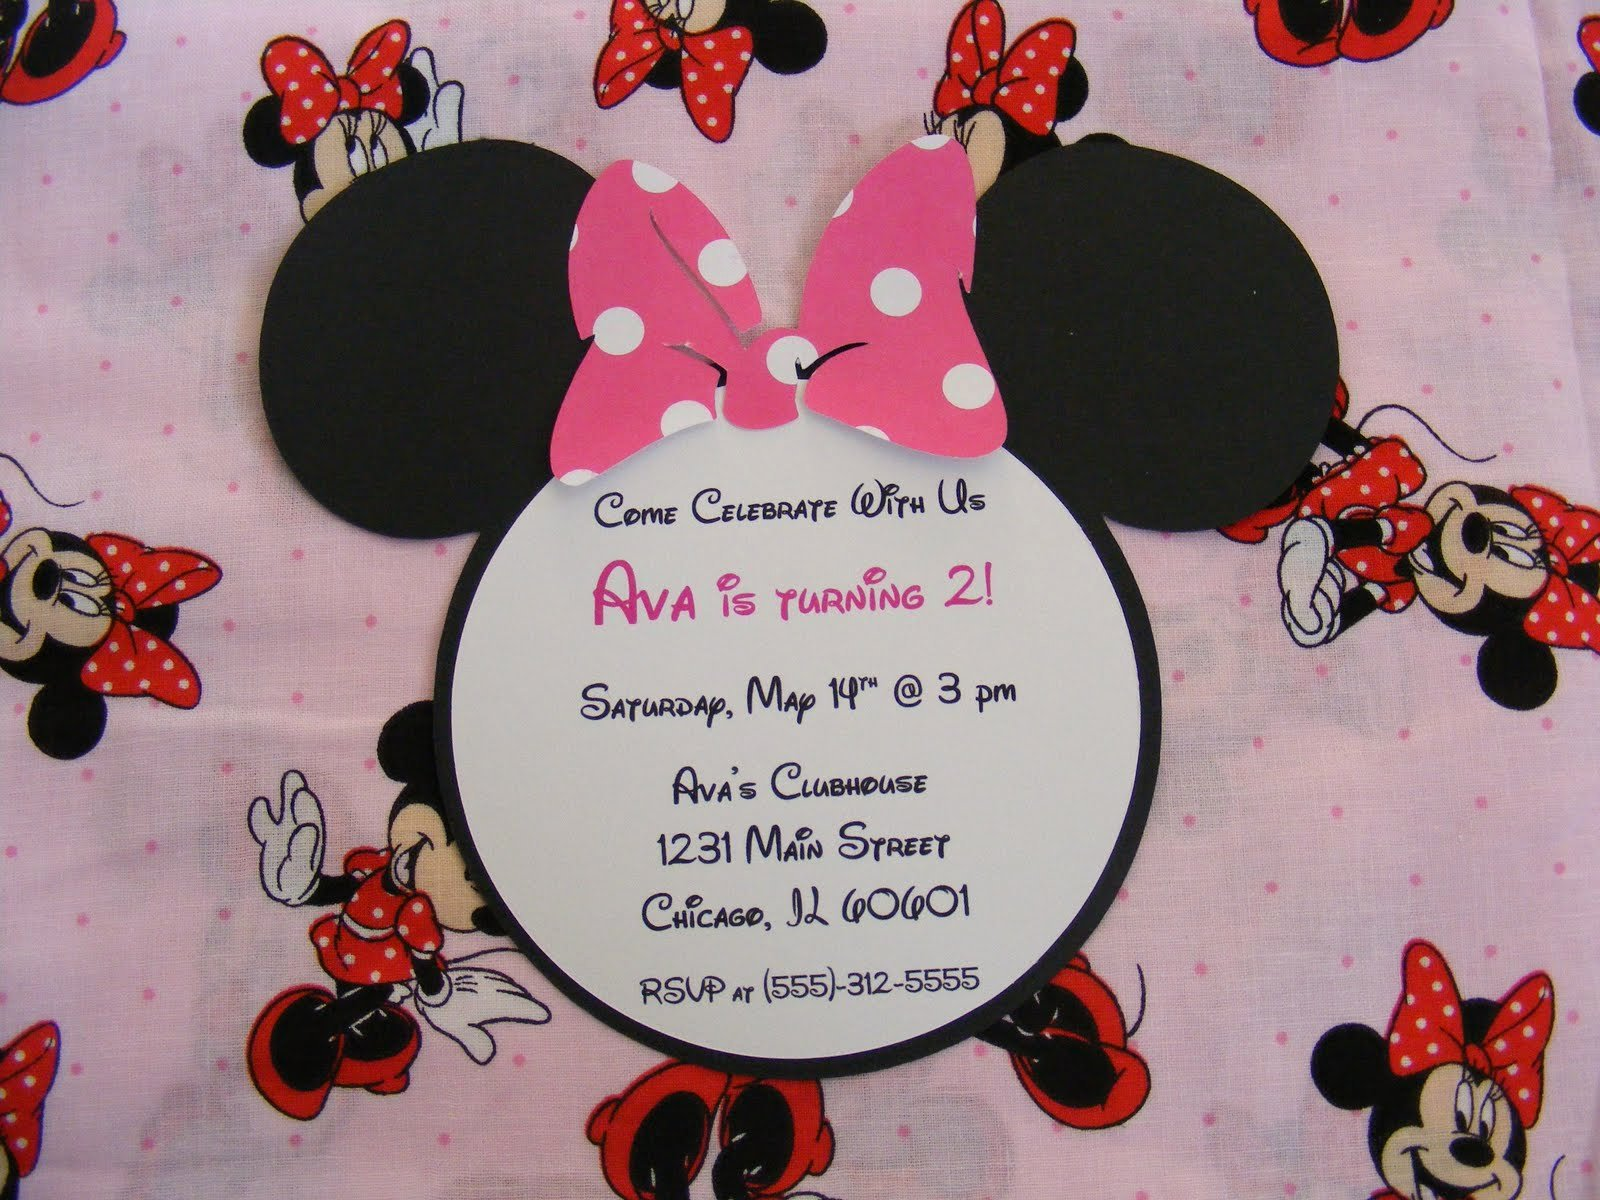 Minnie Mouse Invitation Wording Unique Whimsical Creations by Ann Minnie Mouse Party Ideas